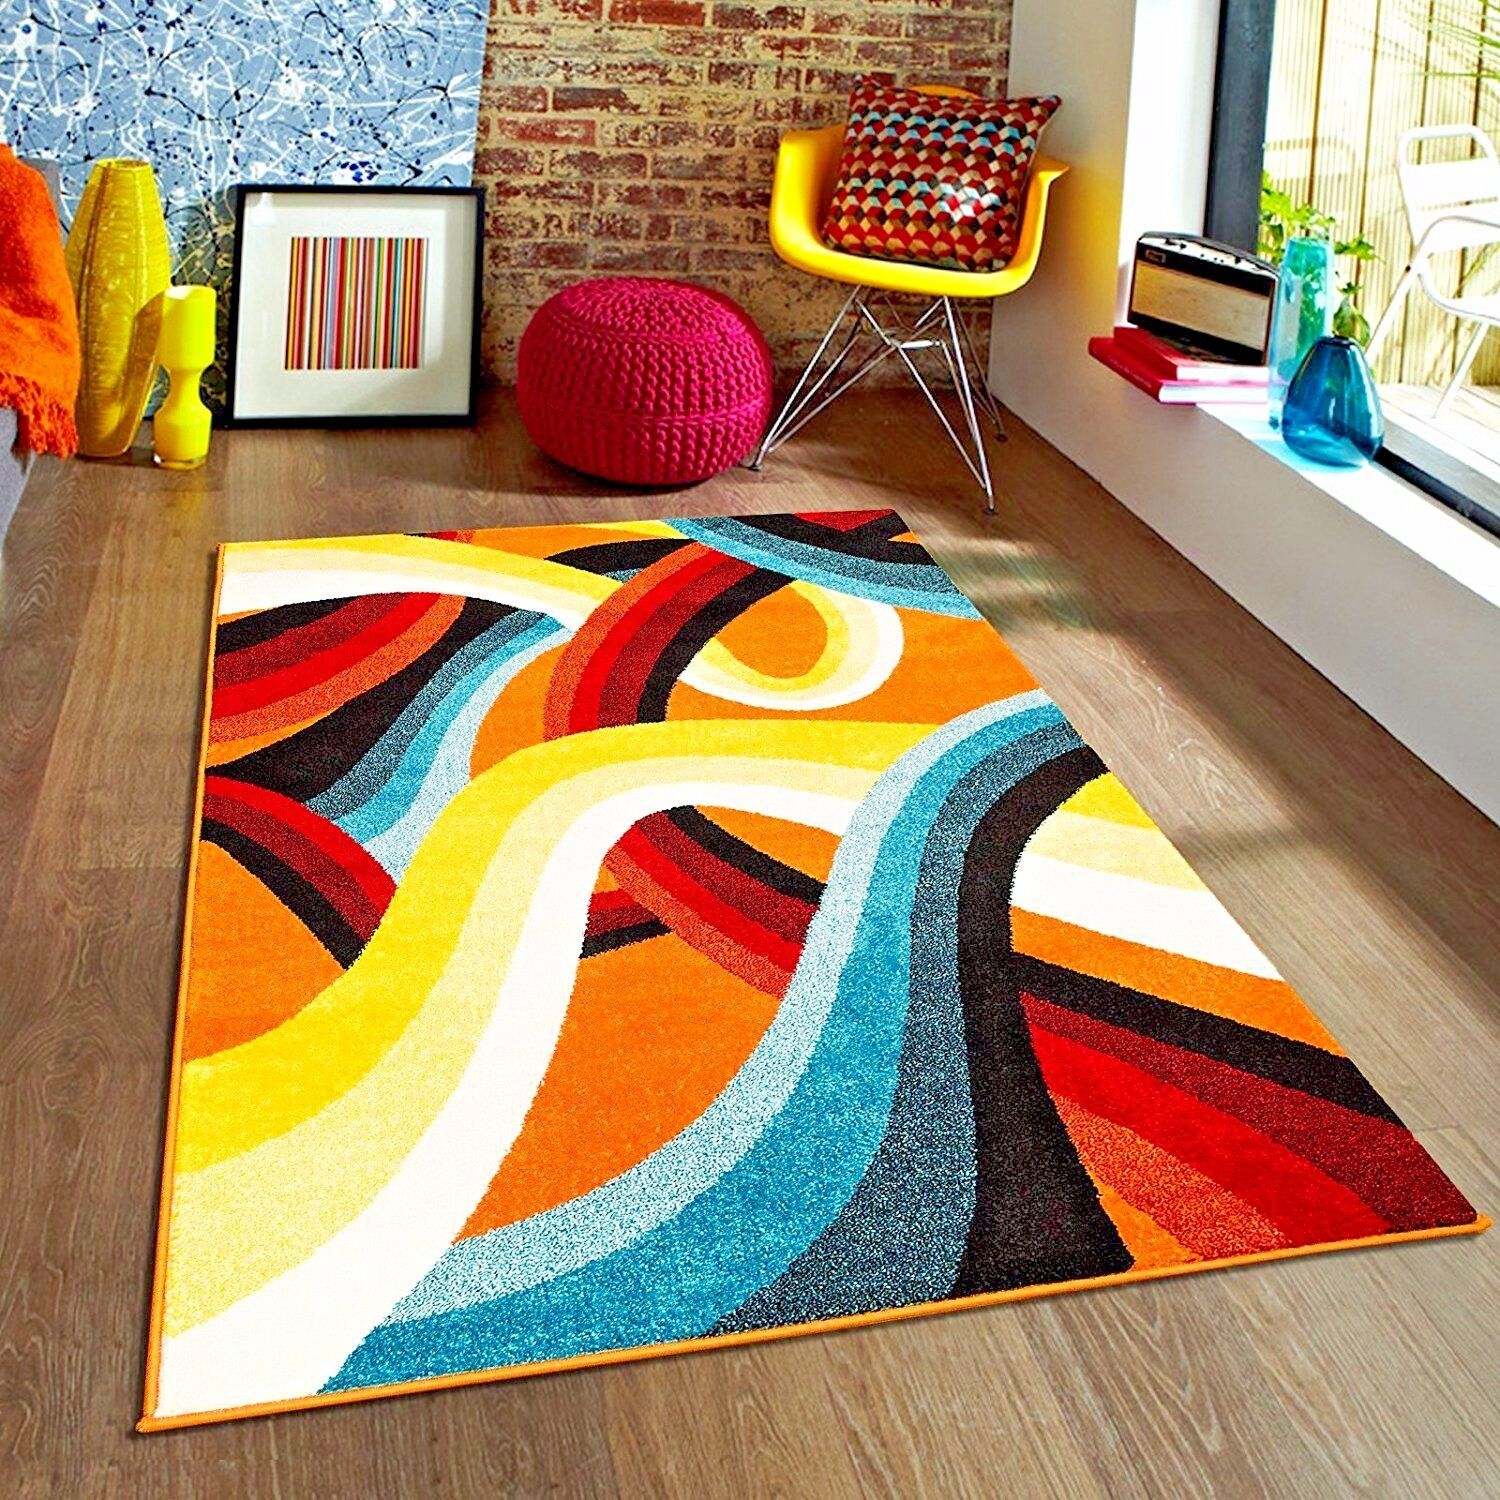 colorful rugs. RUGS AREA 8x10 RUG CARPETS QUALITY MODERN COLORFUL KIDS NEW~ Colorful Rugs